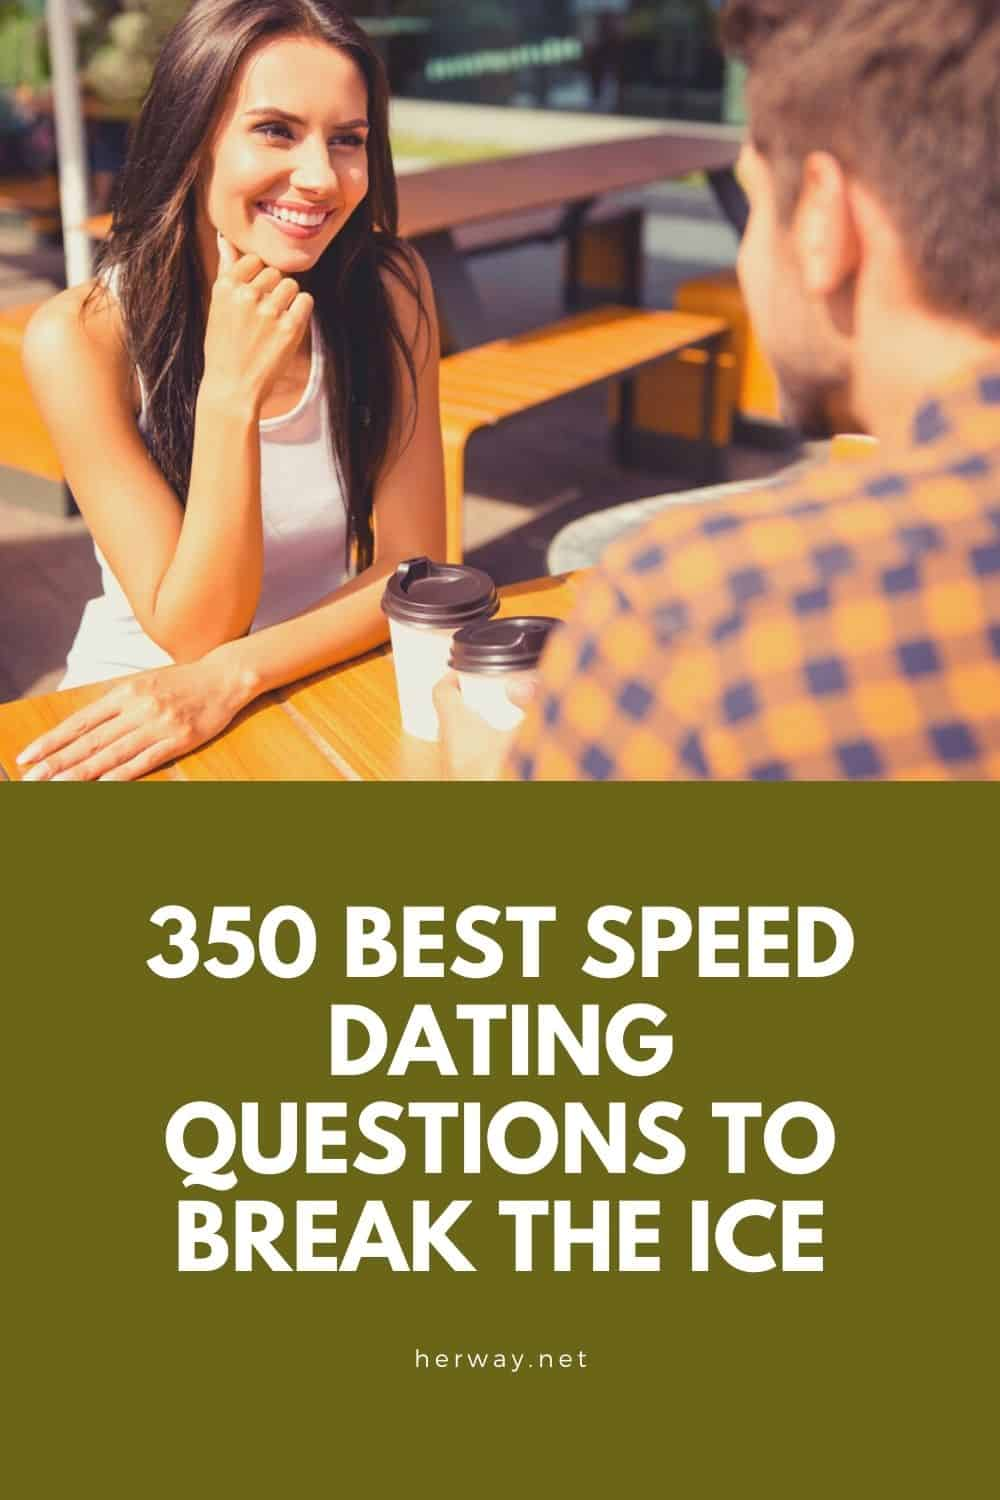 350 Best Speed Dating Questions To Break The Ice